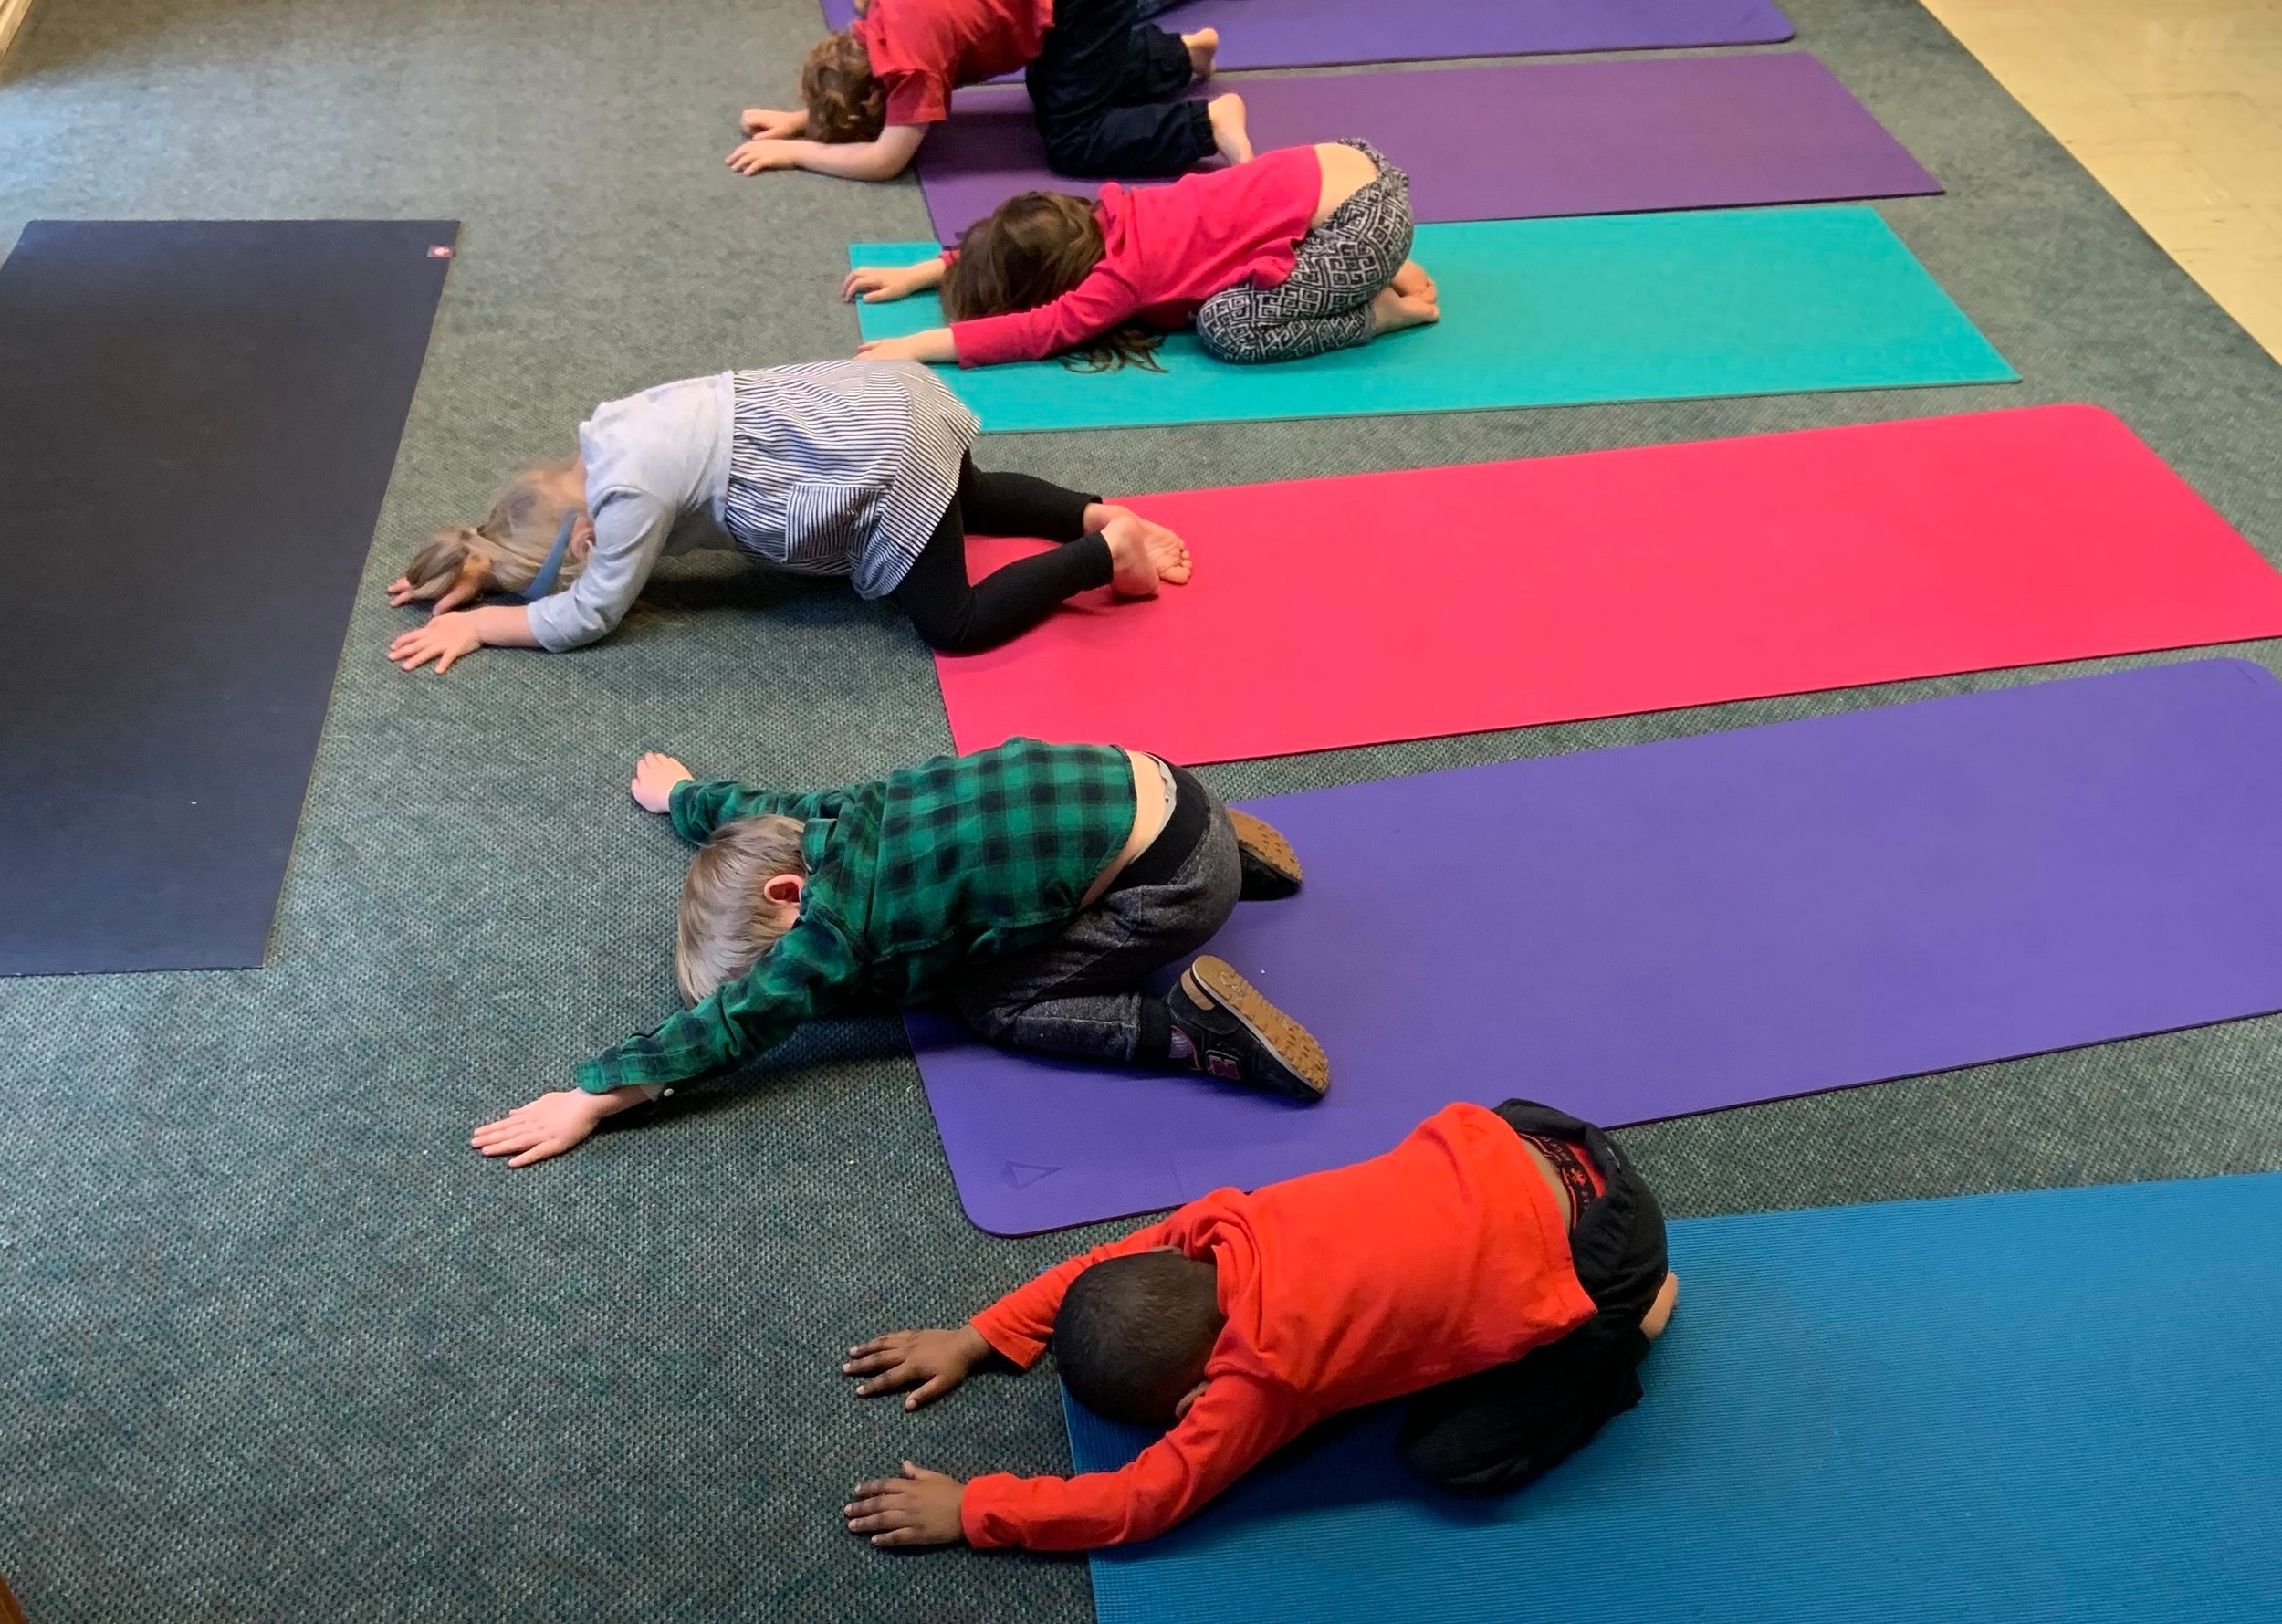 Yoga at preschool — even the littlest yogis love Child's Pose stretch!